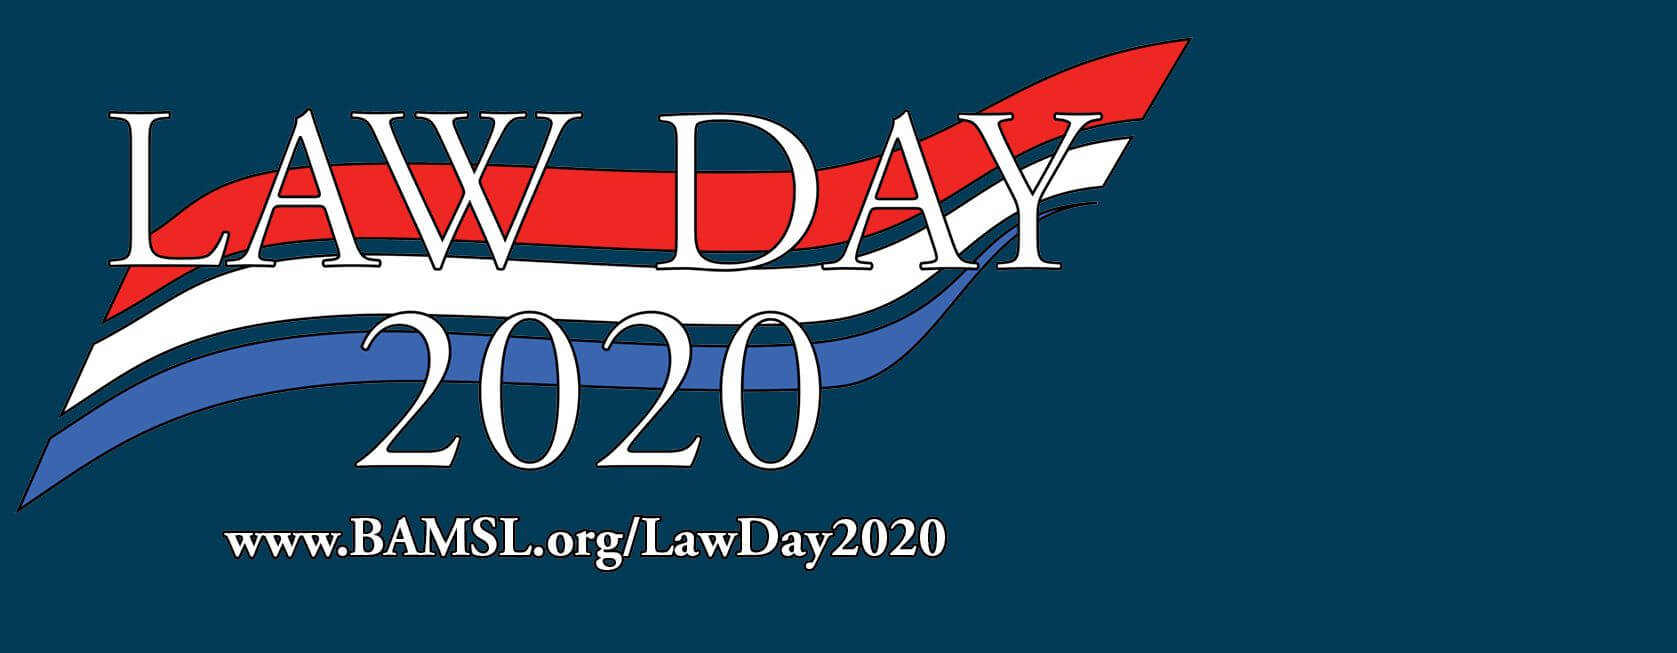 Join us for Law Day on October 2, 2020, at the Four Seasons Hotel